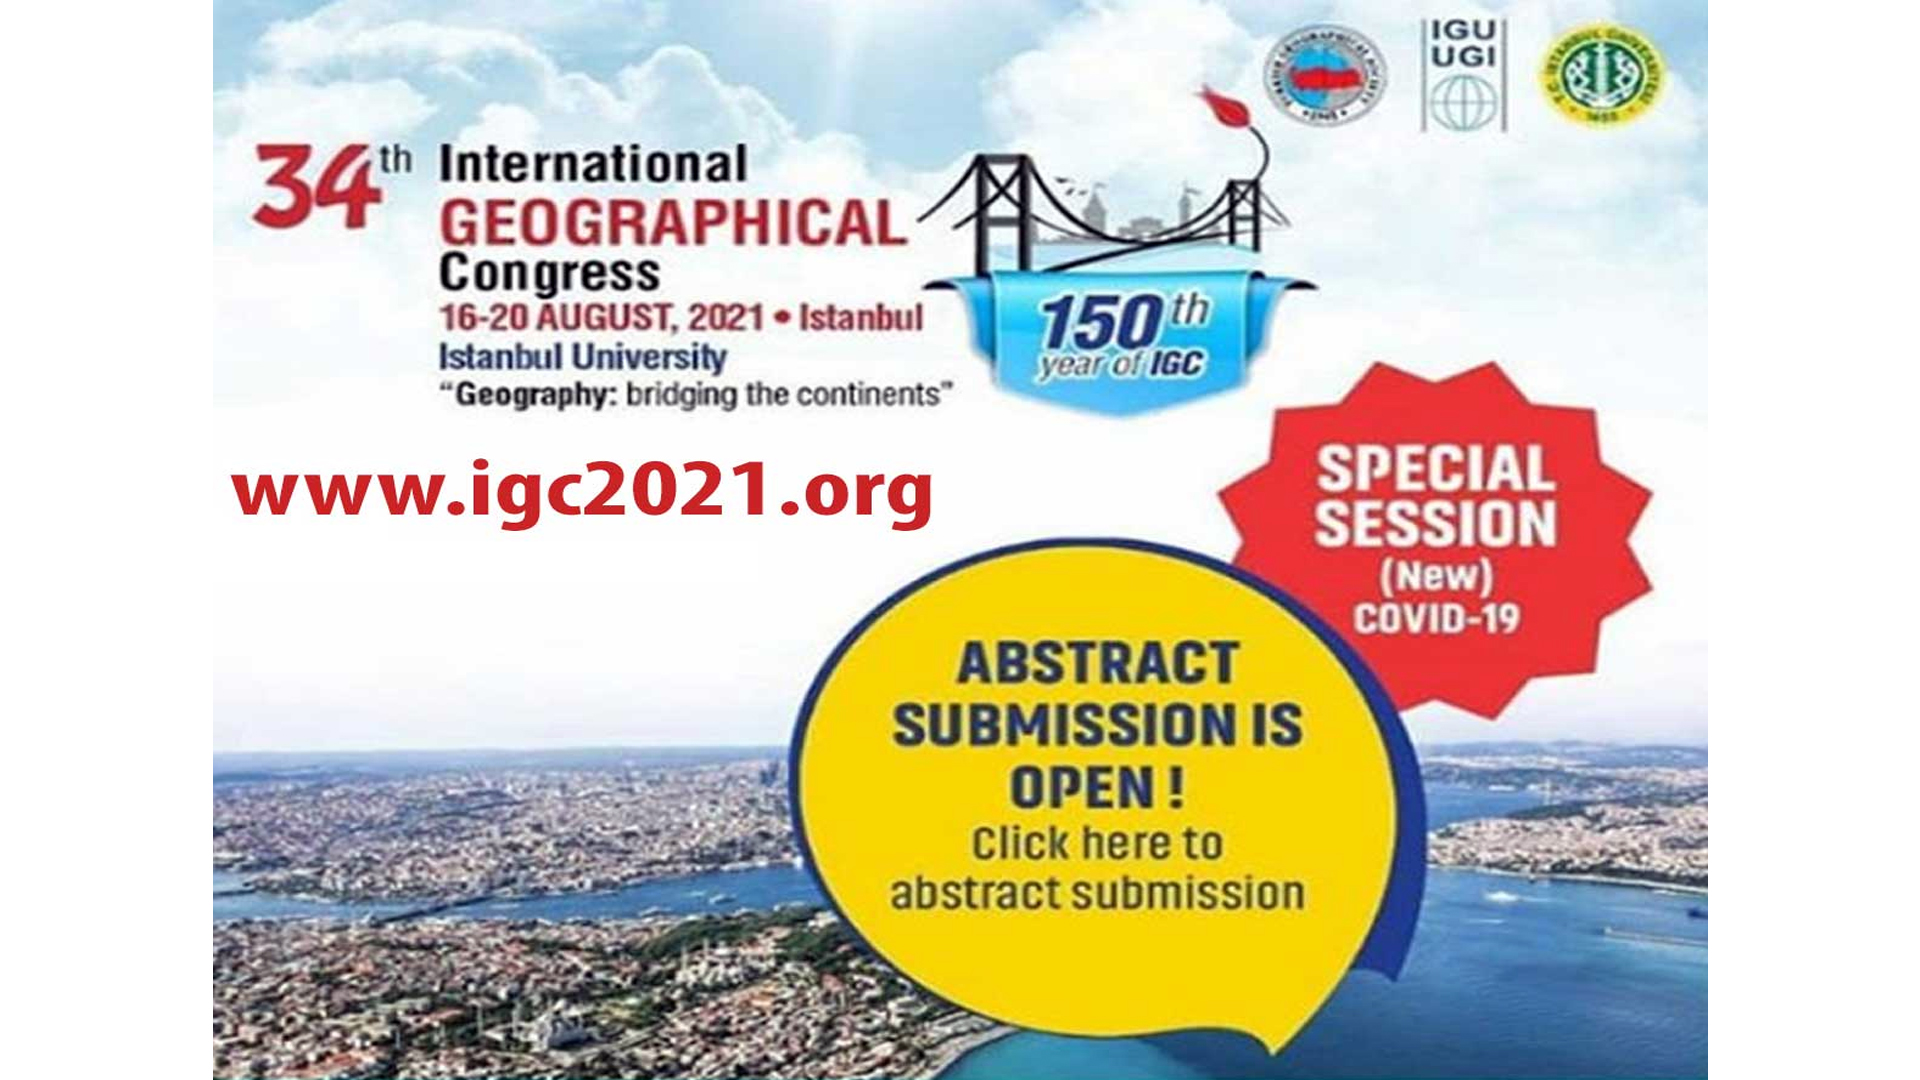 34th INTERNATIONAL GEOGRAPHICAL CONGRESS